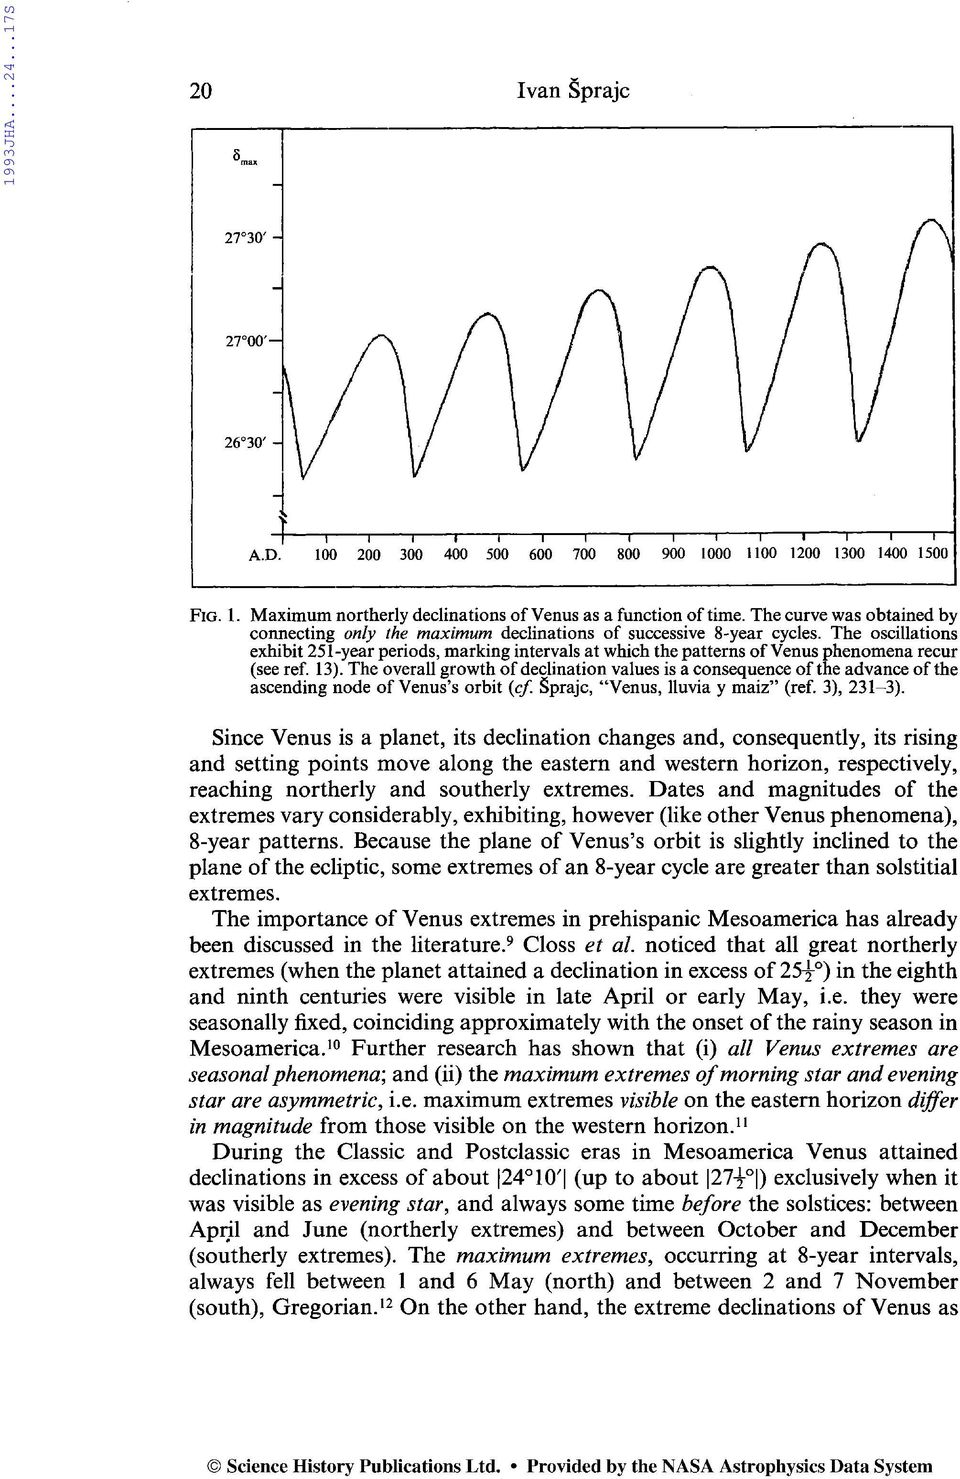 The oscillations exhibit 251-year periods, marking intervals at which the patterns of Venus phenomena recur (see ref. 13).